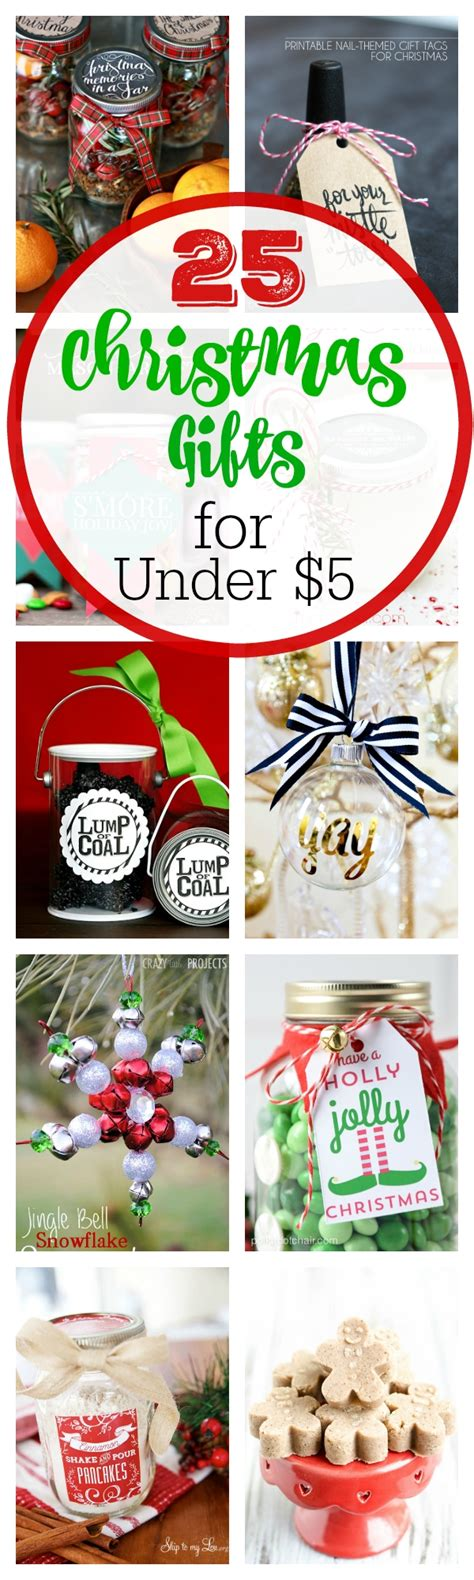 christmas gifts for coworkers under 5 svoboda2 com